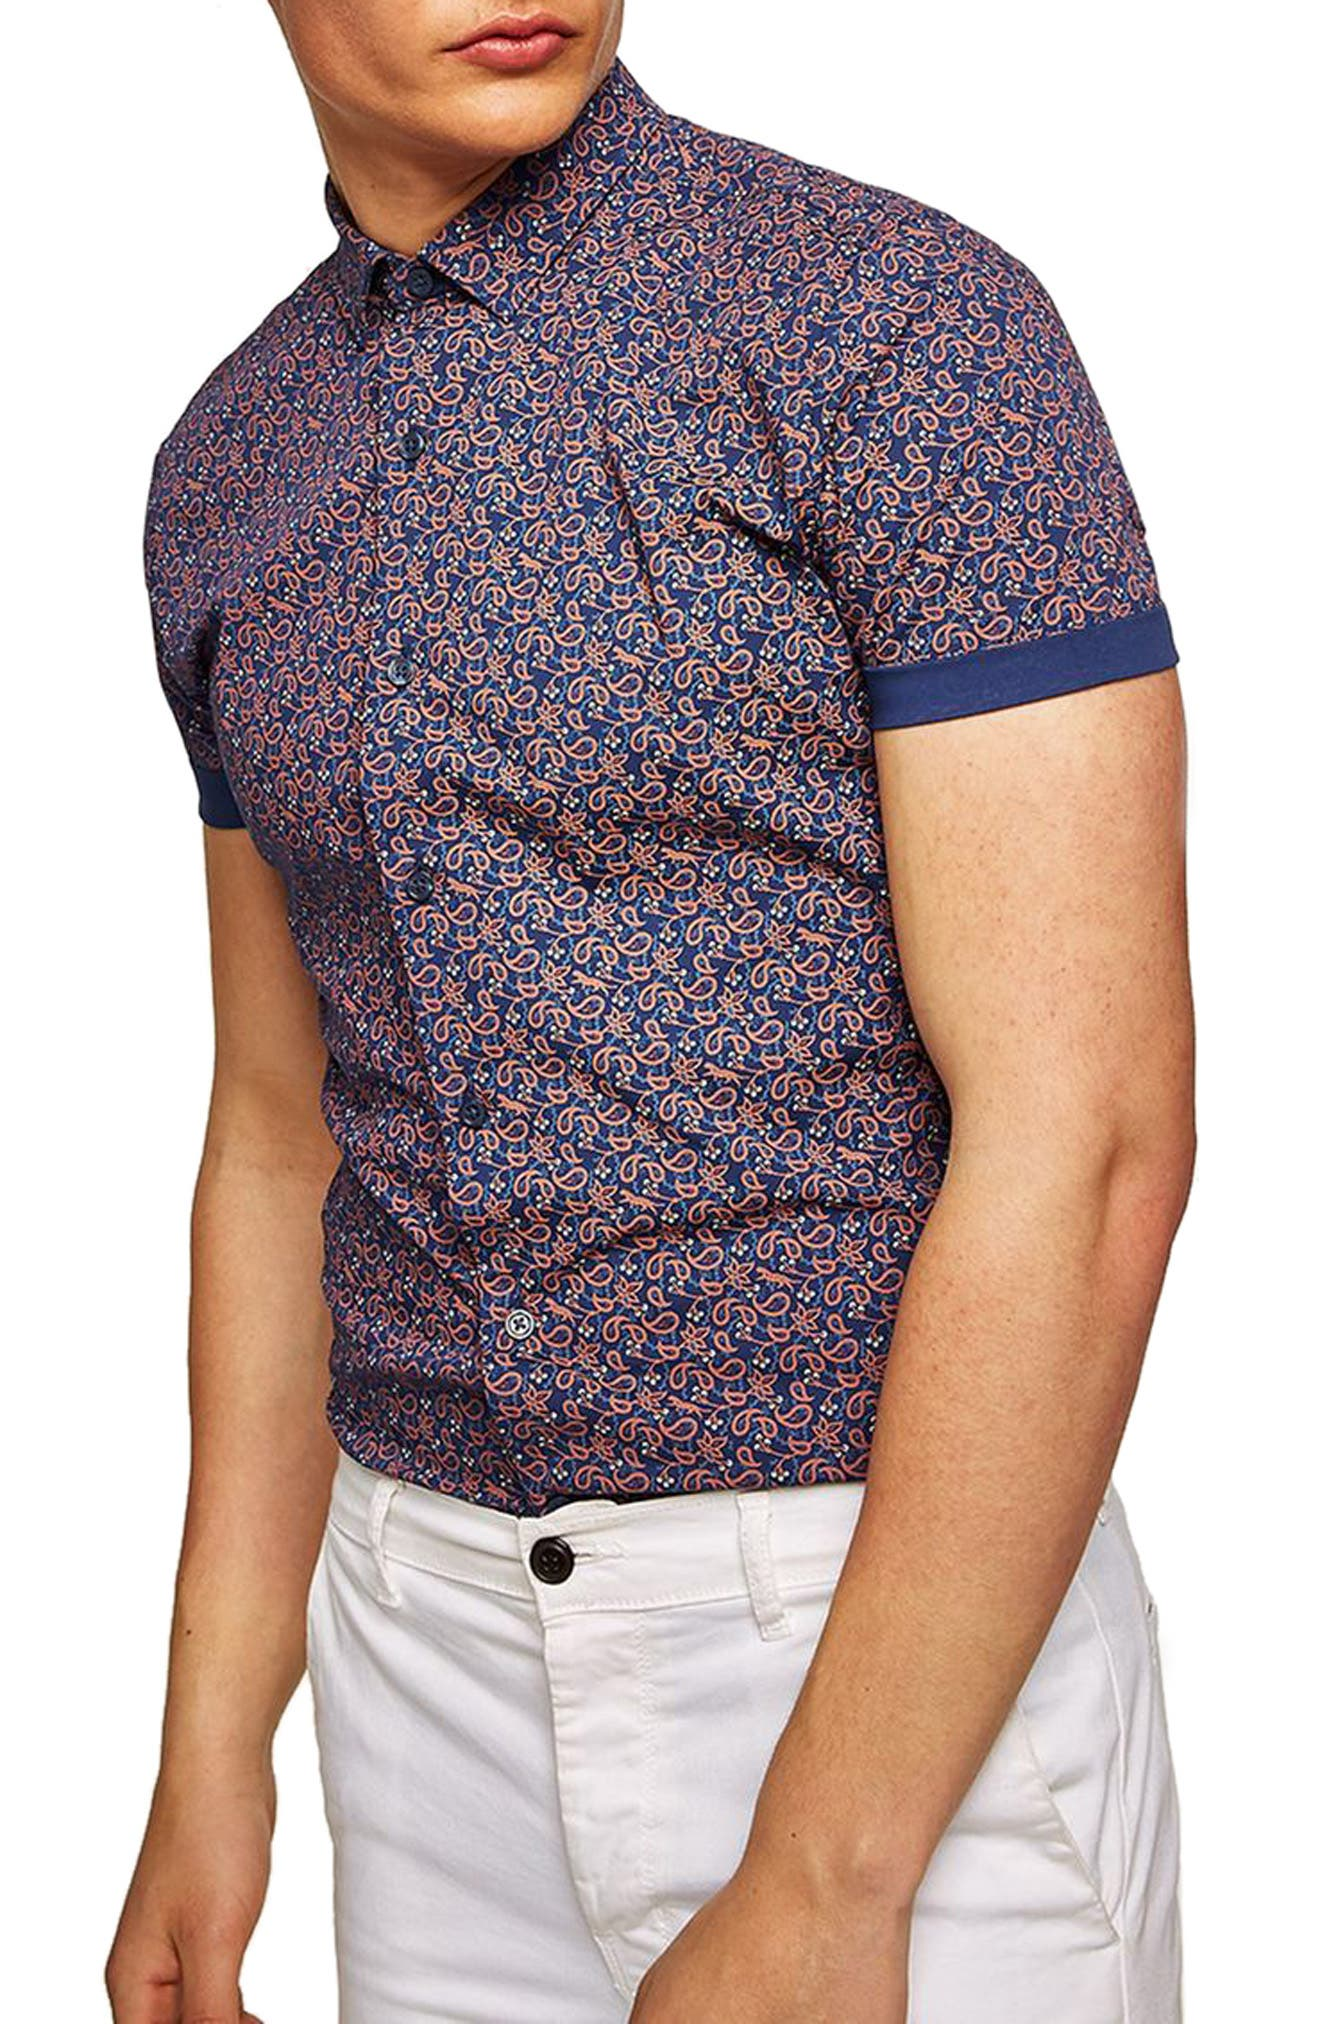 Muscle Fit Eclectic Paisley Print Shirt,                         Main,                         color, Blue Multi